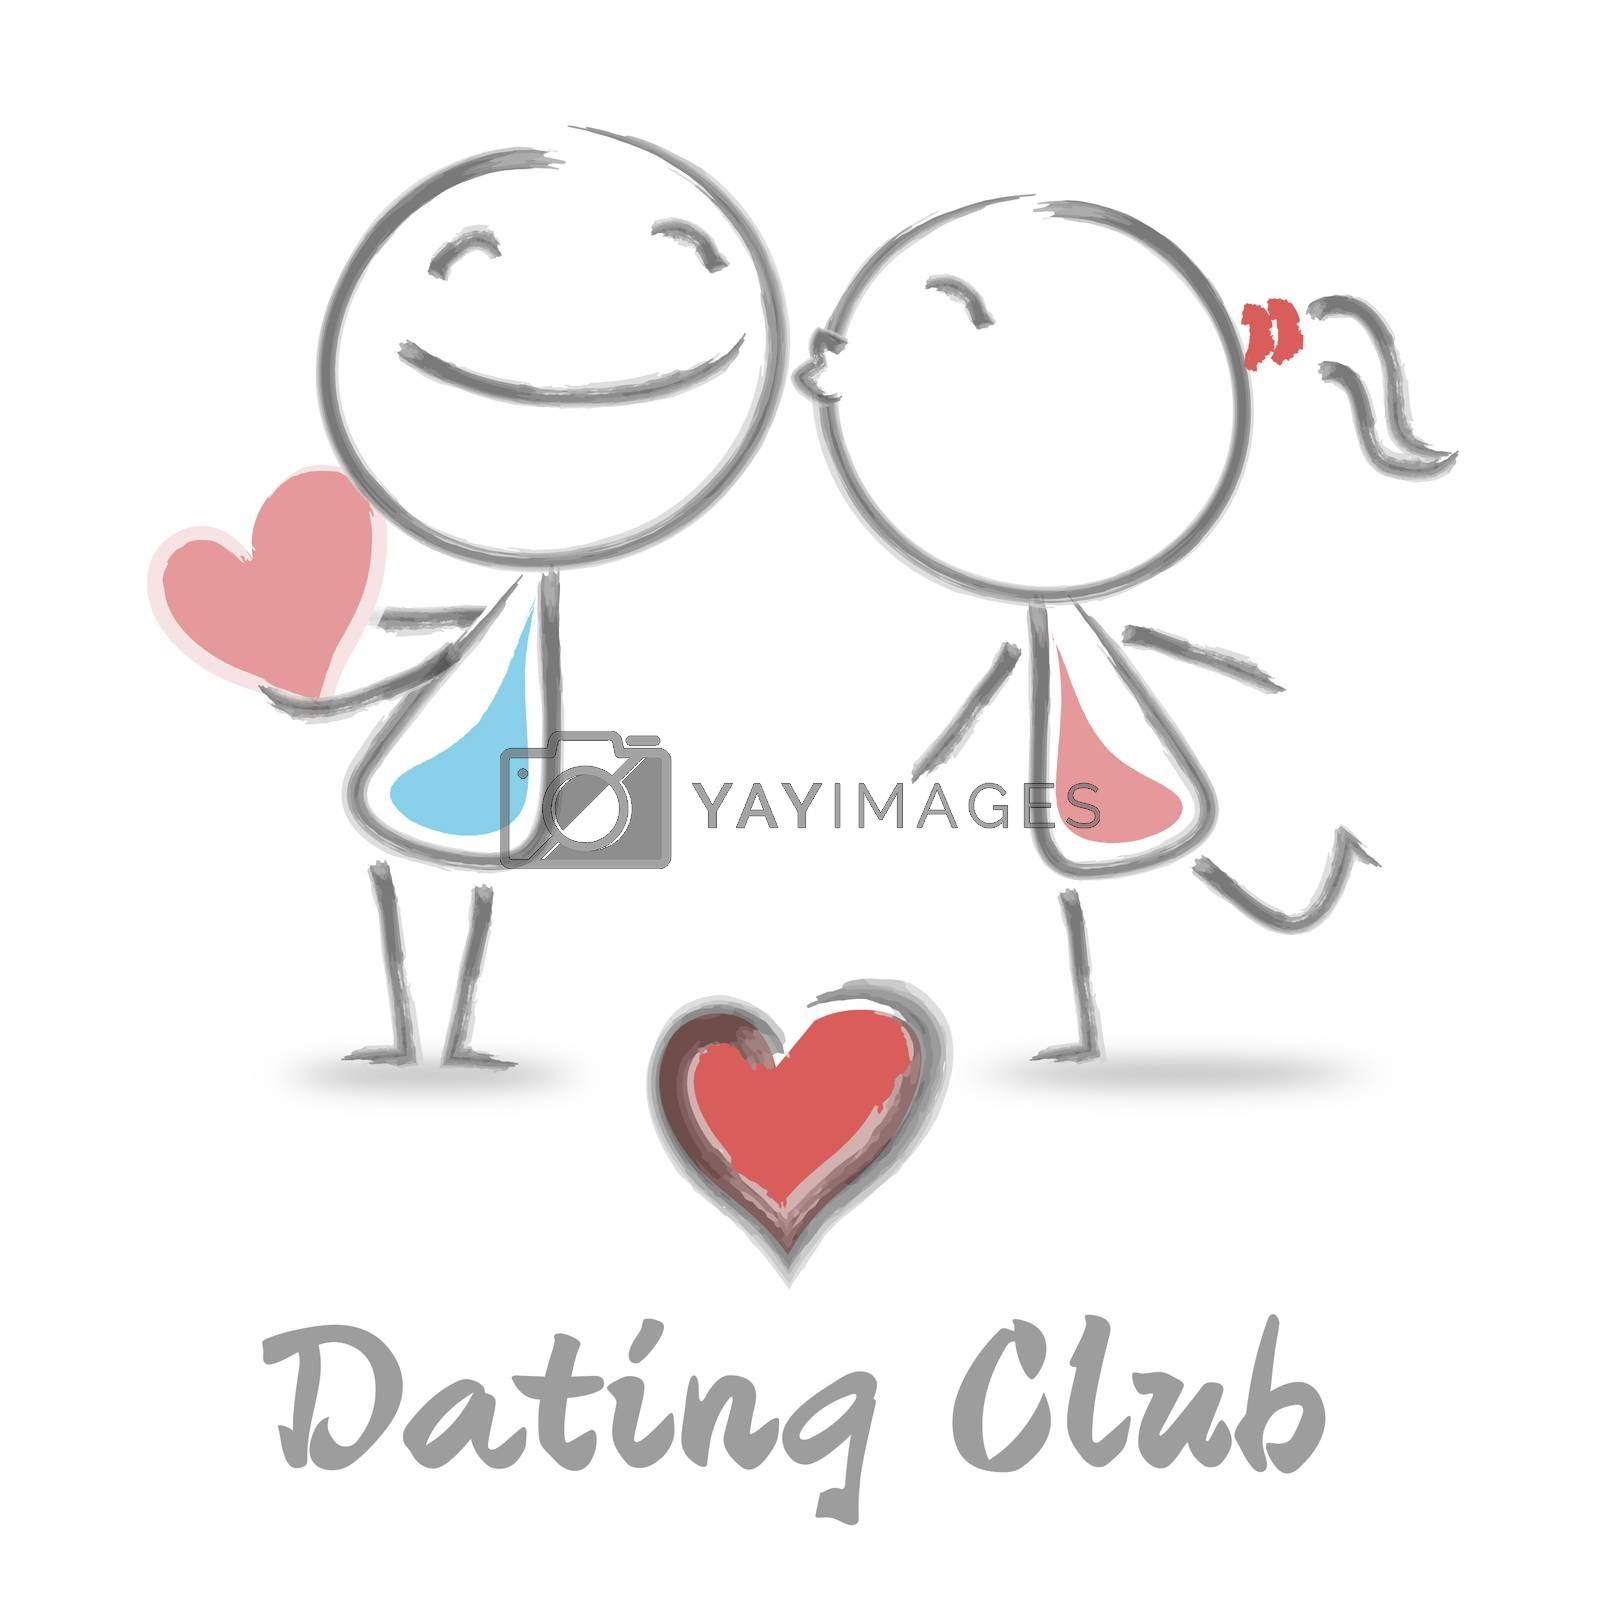 Dating Club Showing Sweethearts And Online Romance